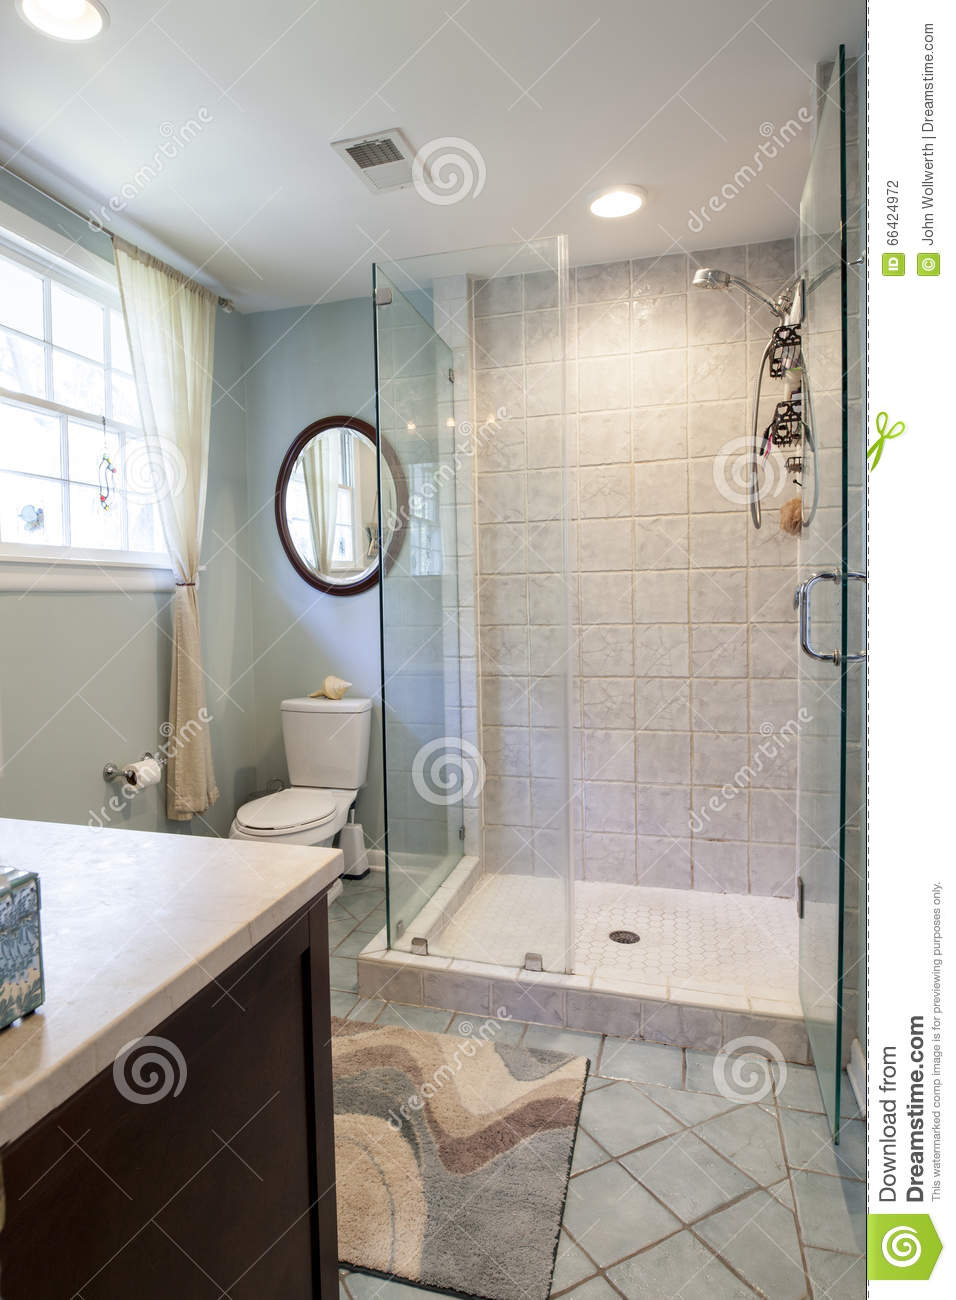 Bathroom Remodel Walk In Shower.Modern Bathroom Remodel With Shower And Tile Stock Photo